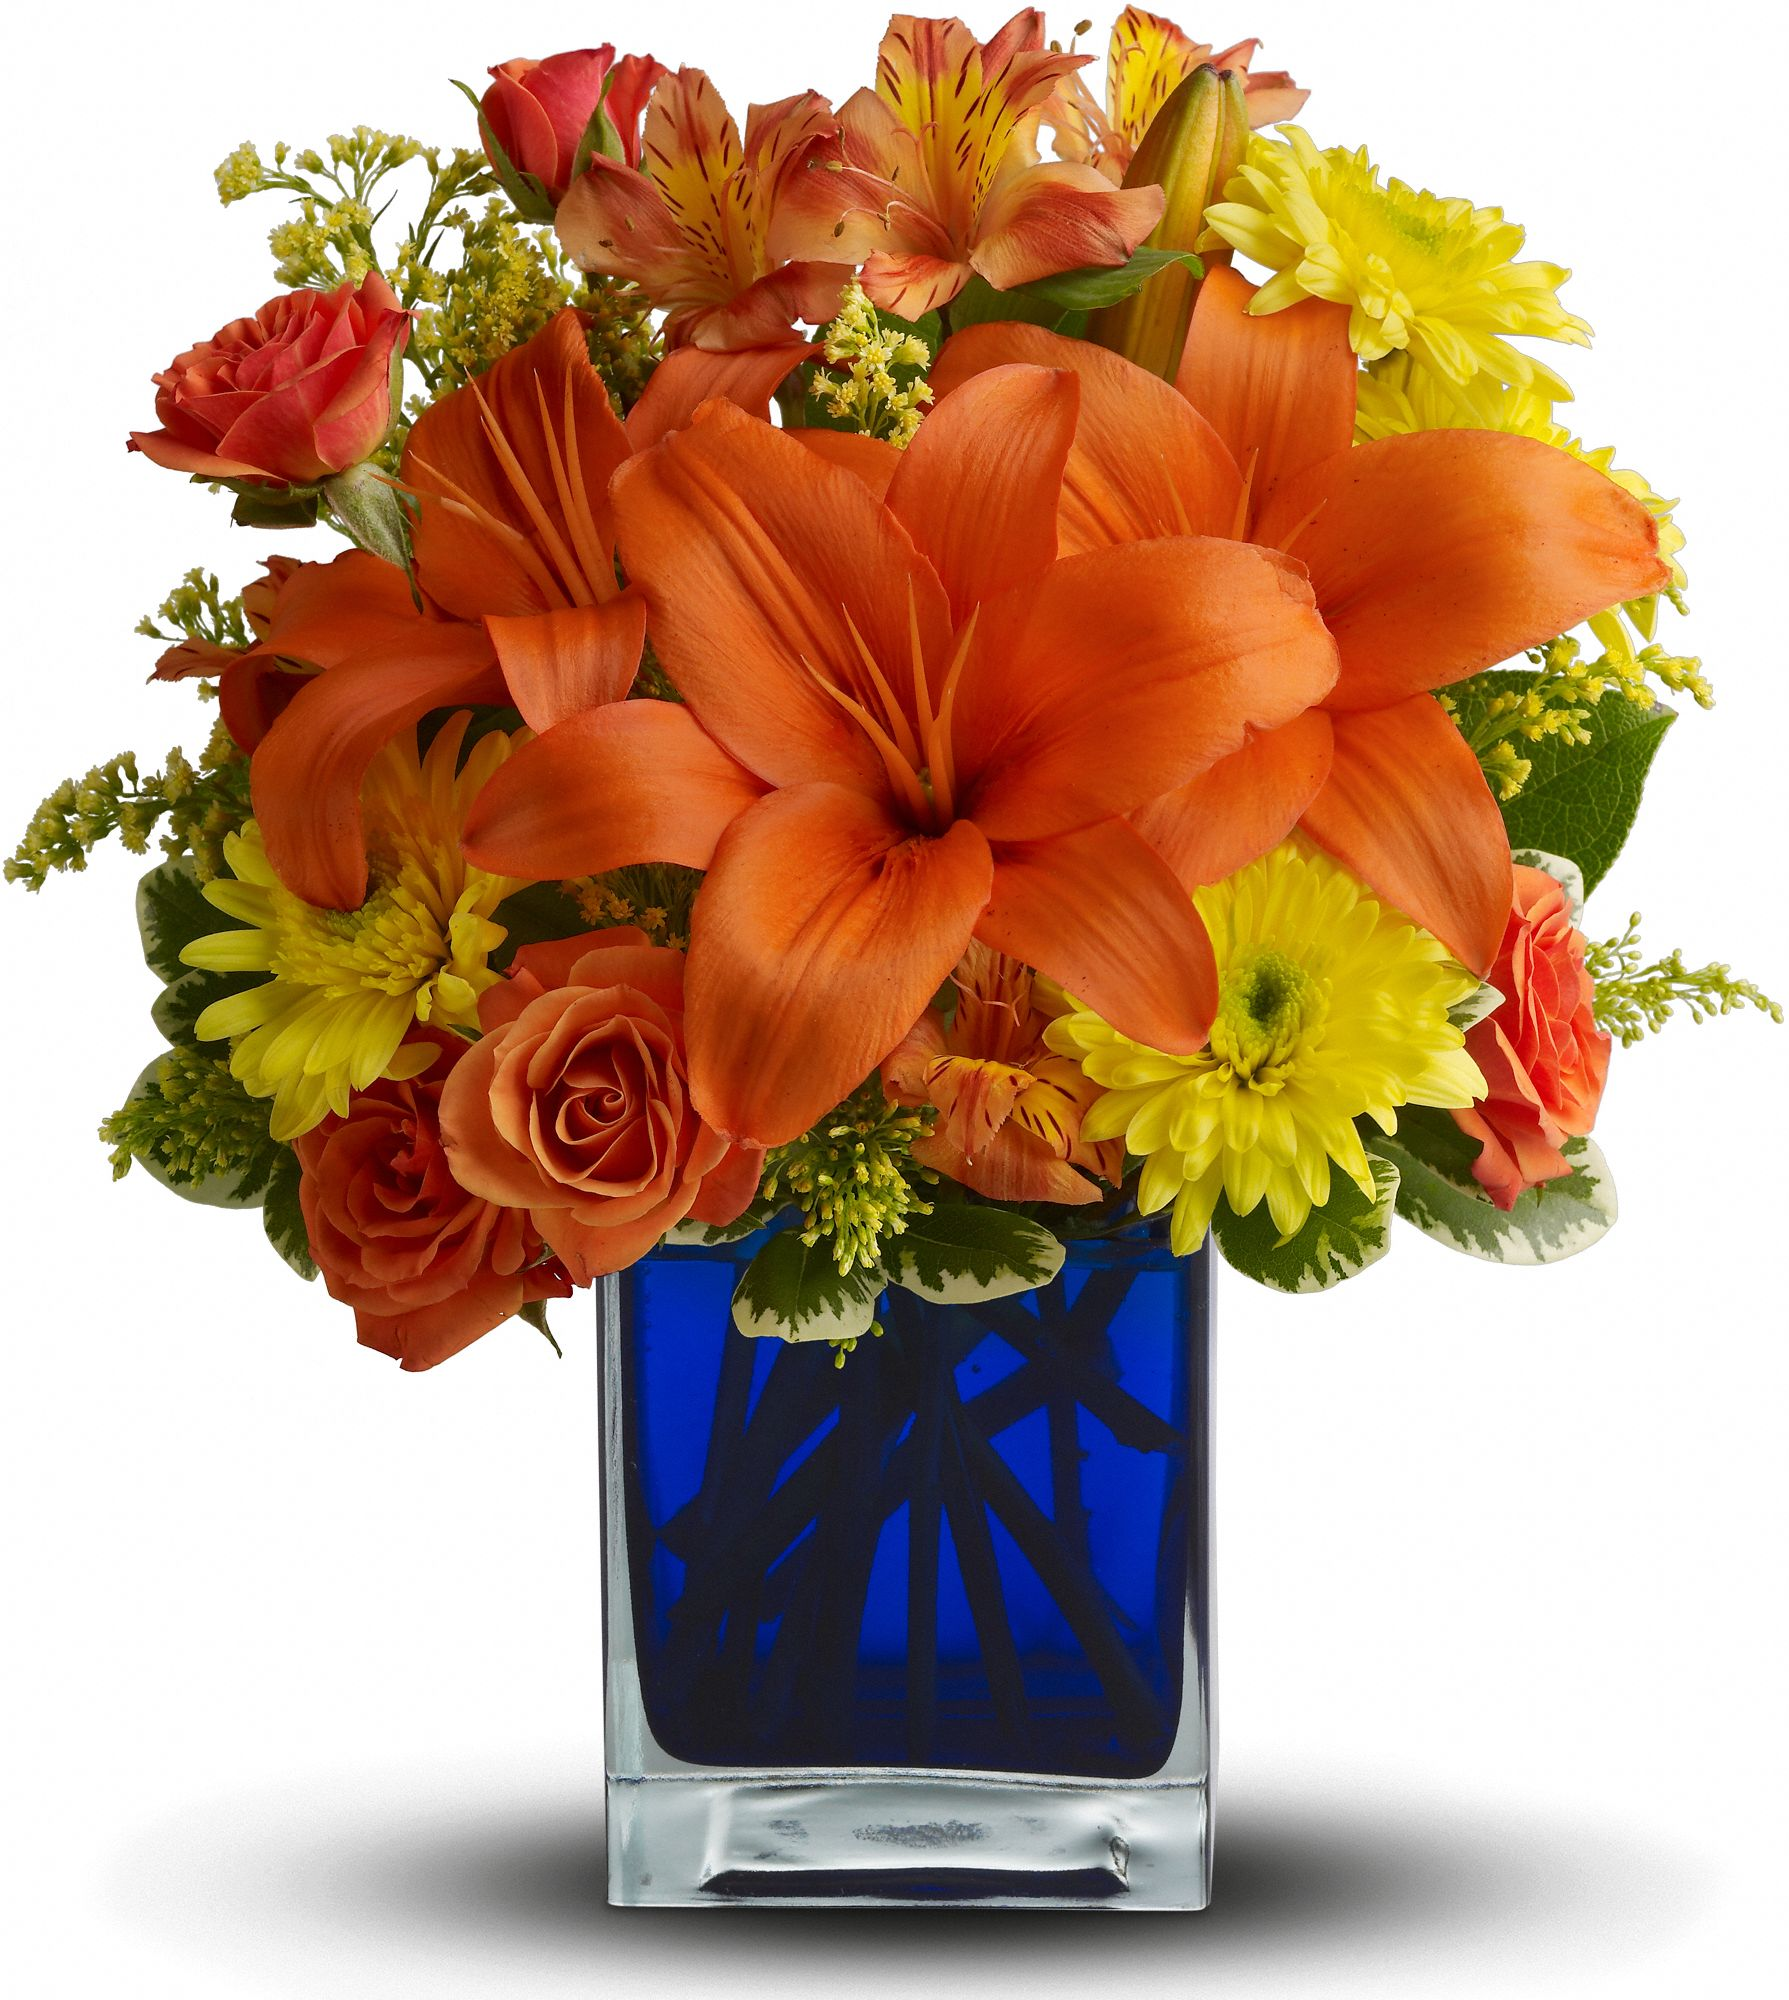 Summer Nights By Teleflora Flowers, Summer Nights By